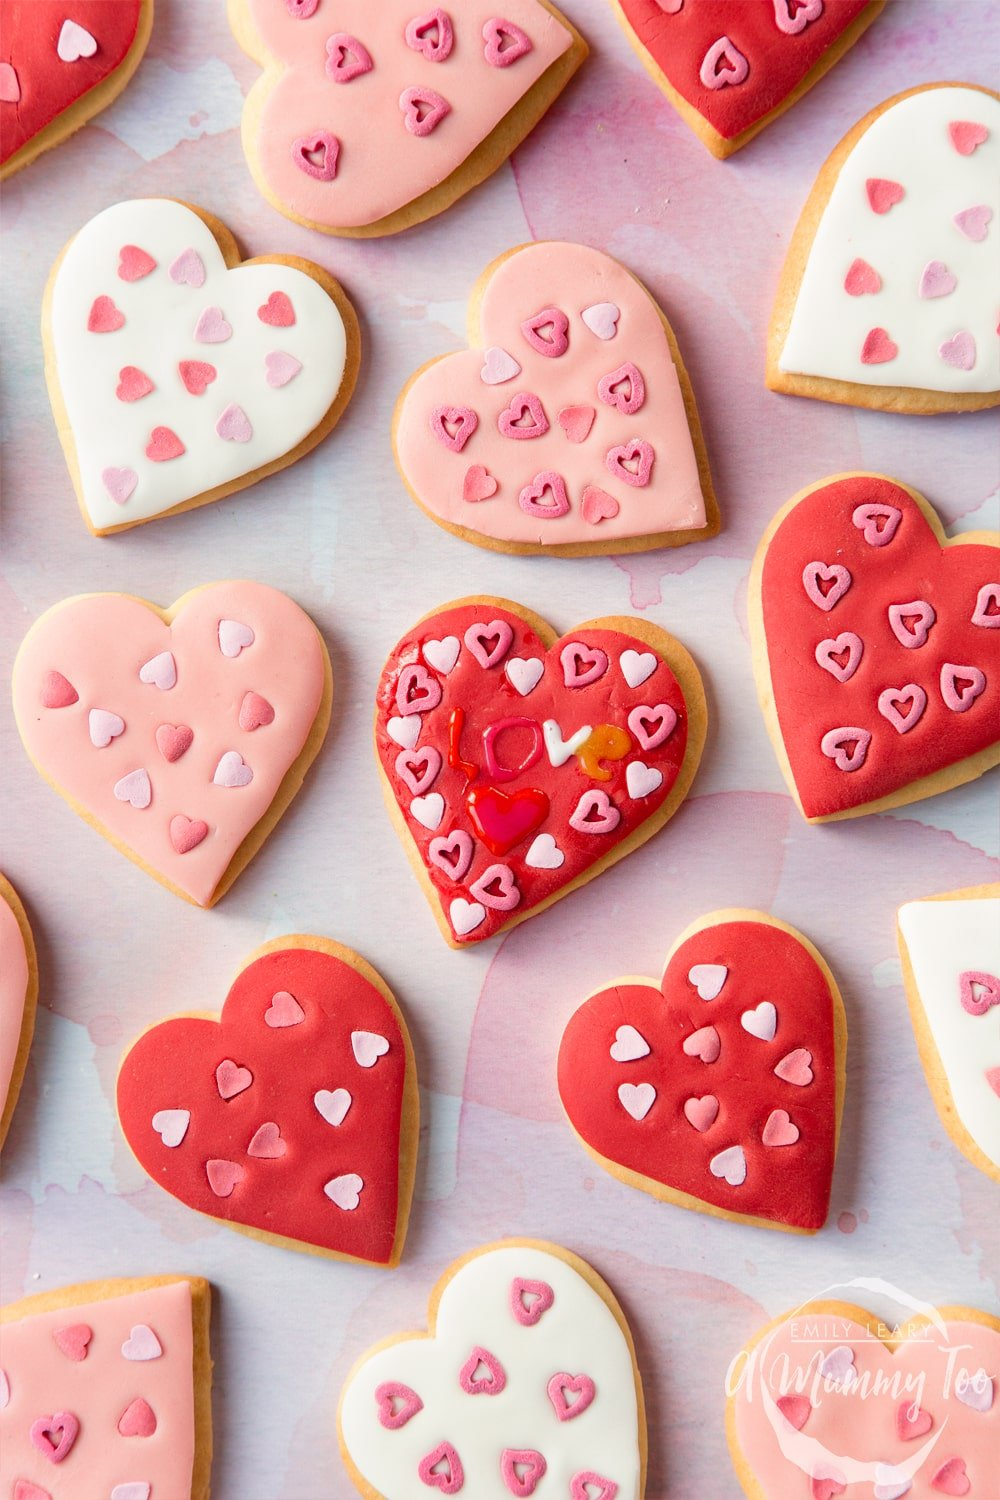 Overhead shot of Valentines day cookies with additional icing writing with the A Mummy Too logo in the bottom right hand corner